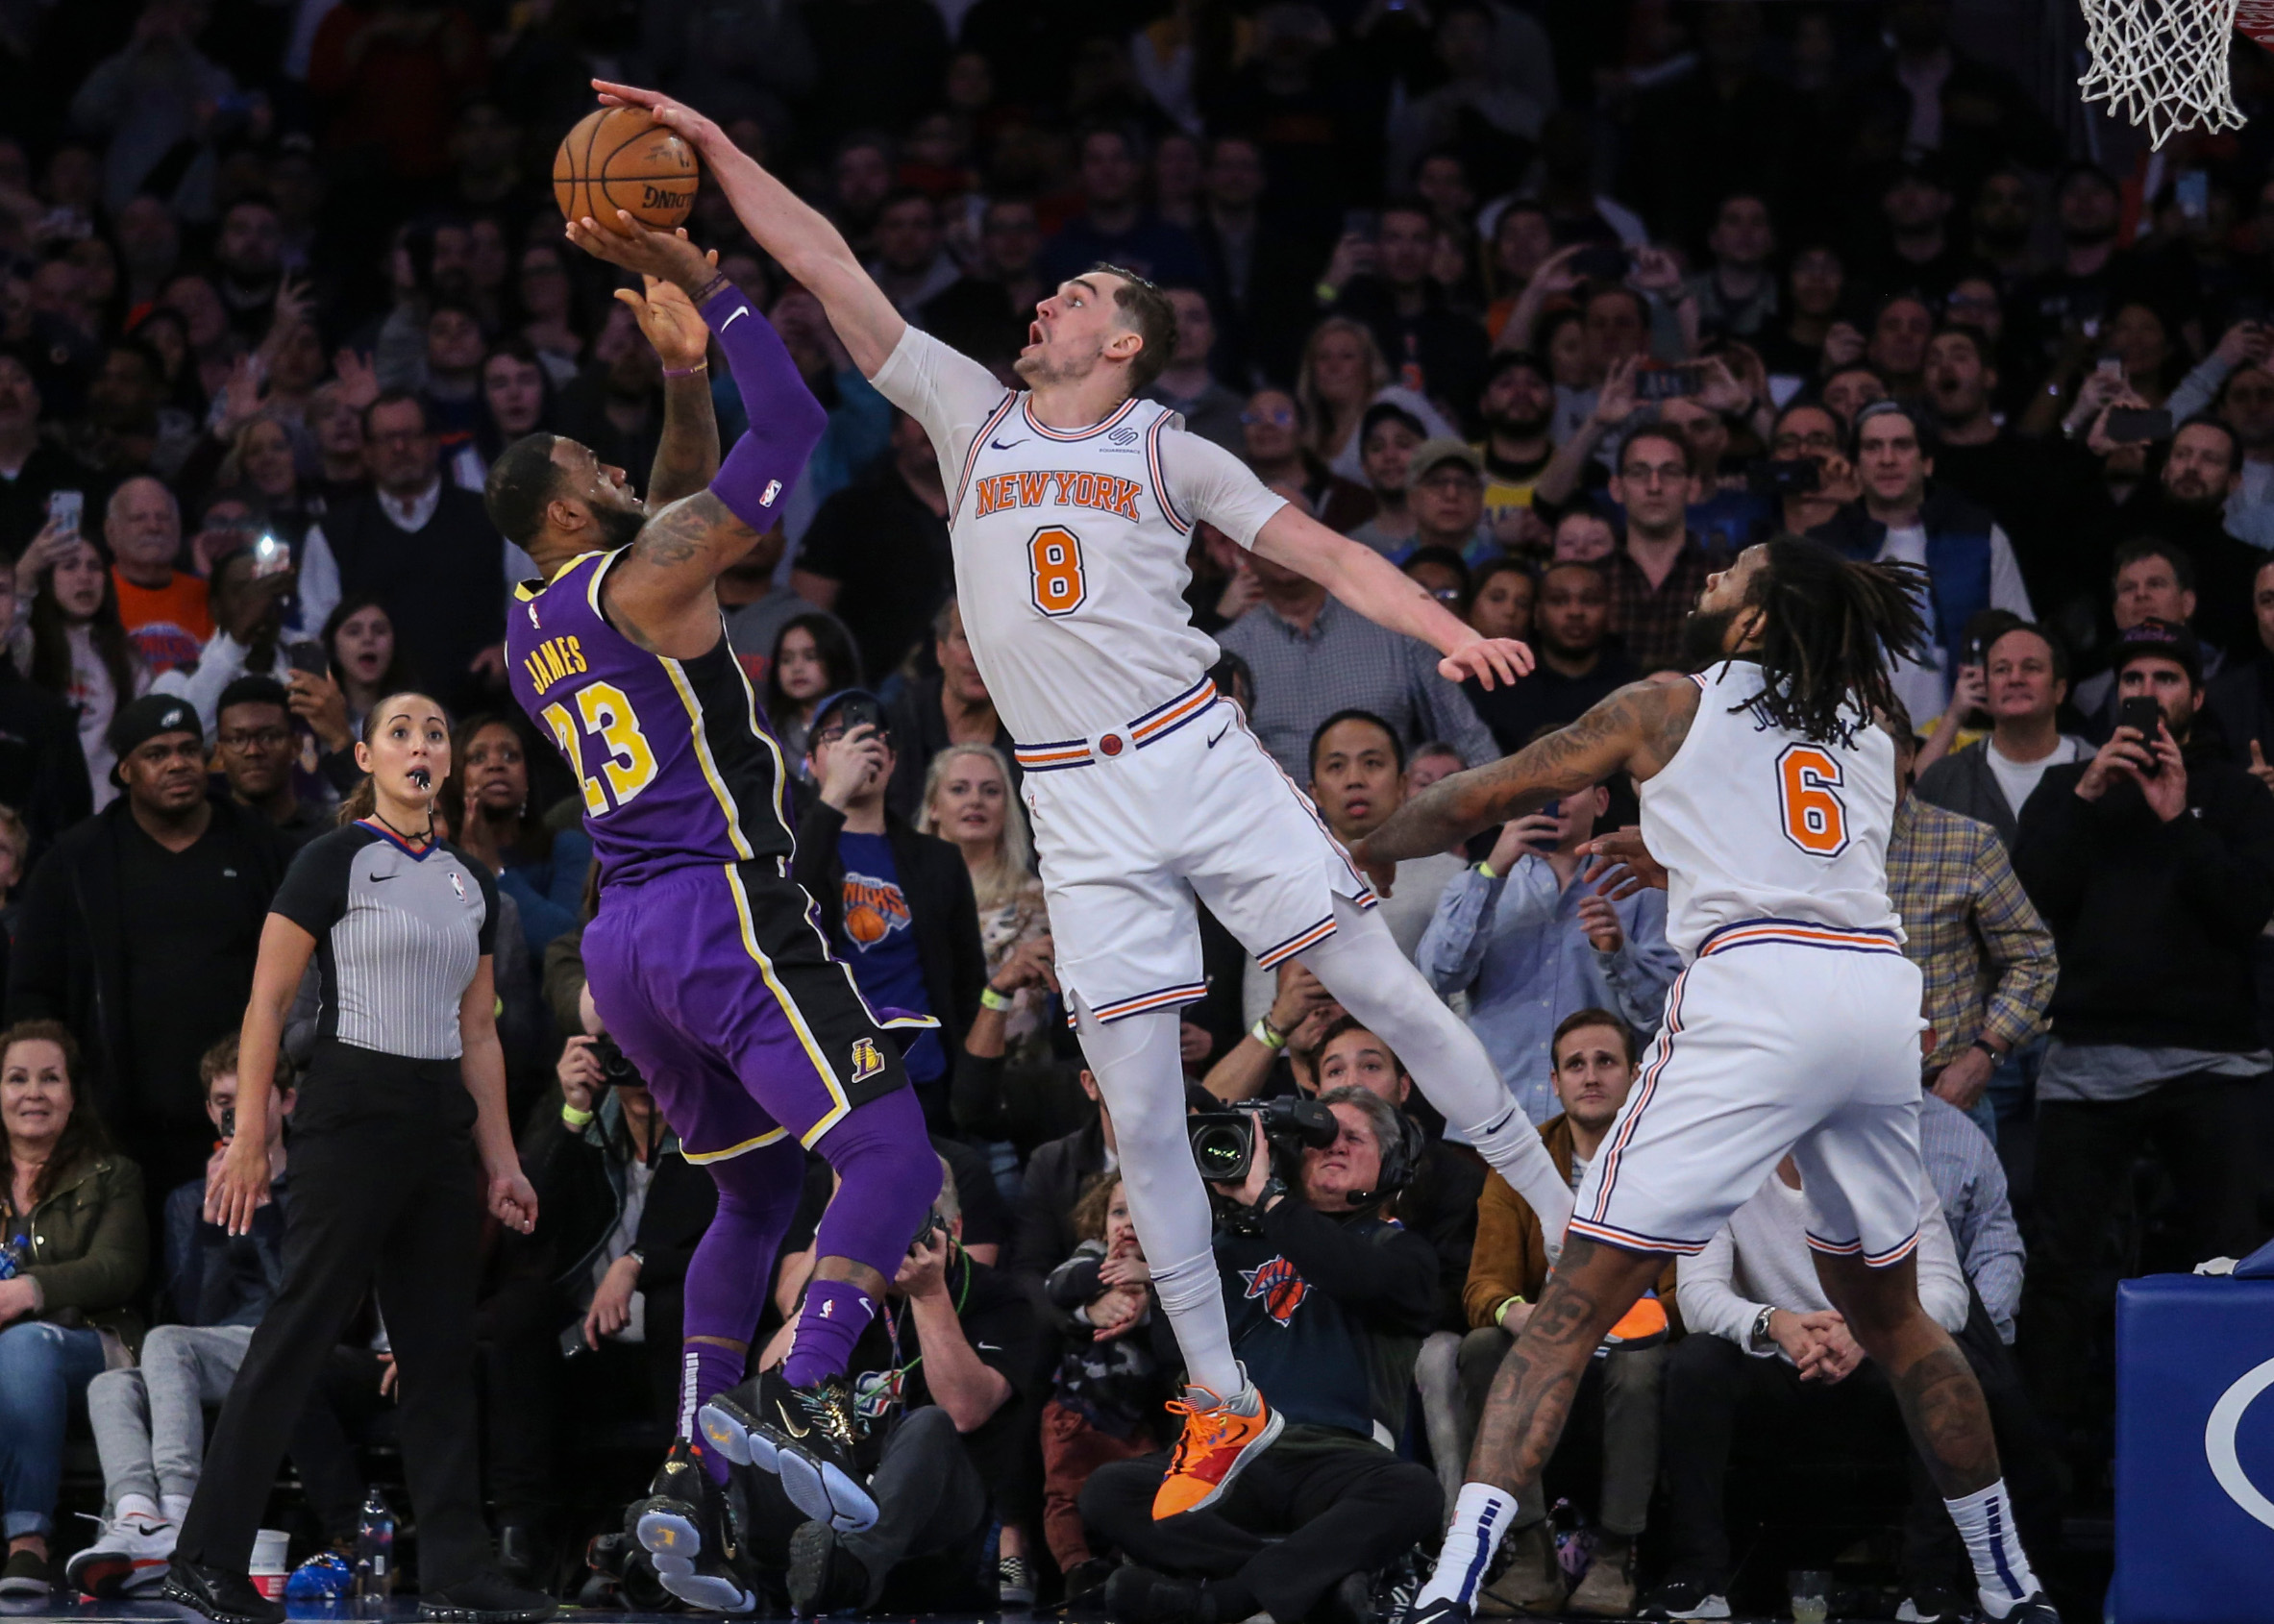 2019-03-17T185055Z_1642601049_NOCID_RTRMADP_3_NBA-LOS-ANGELES-LAKERS-AT-NEW-YORK-KNICKS